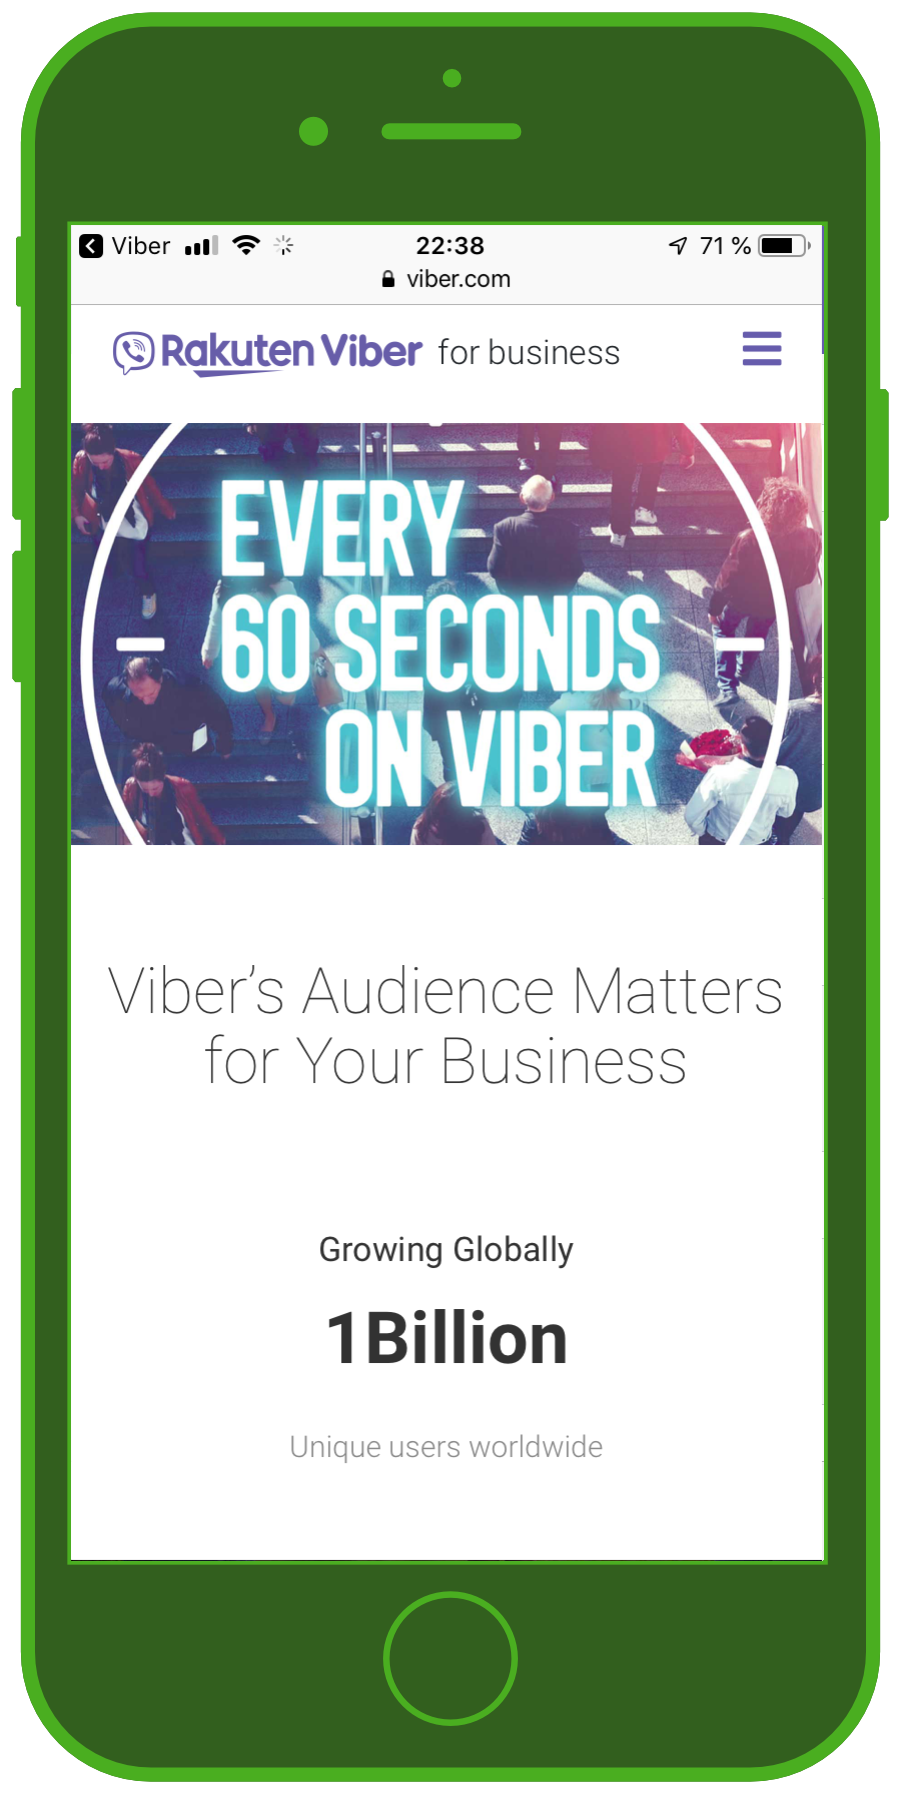 viber messenger business solutions